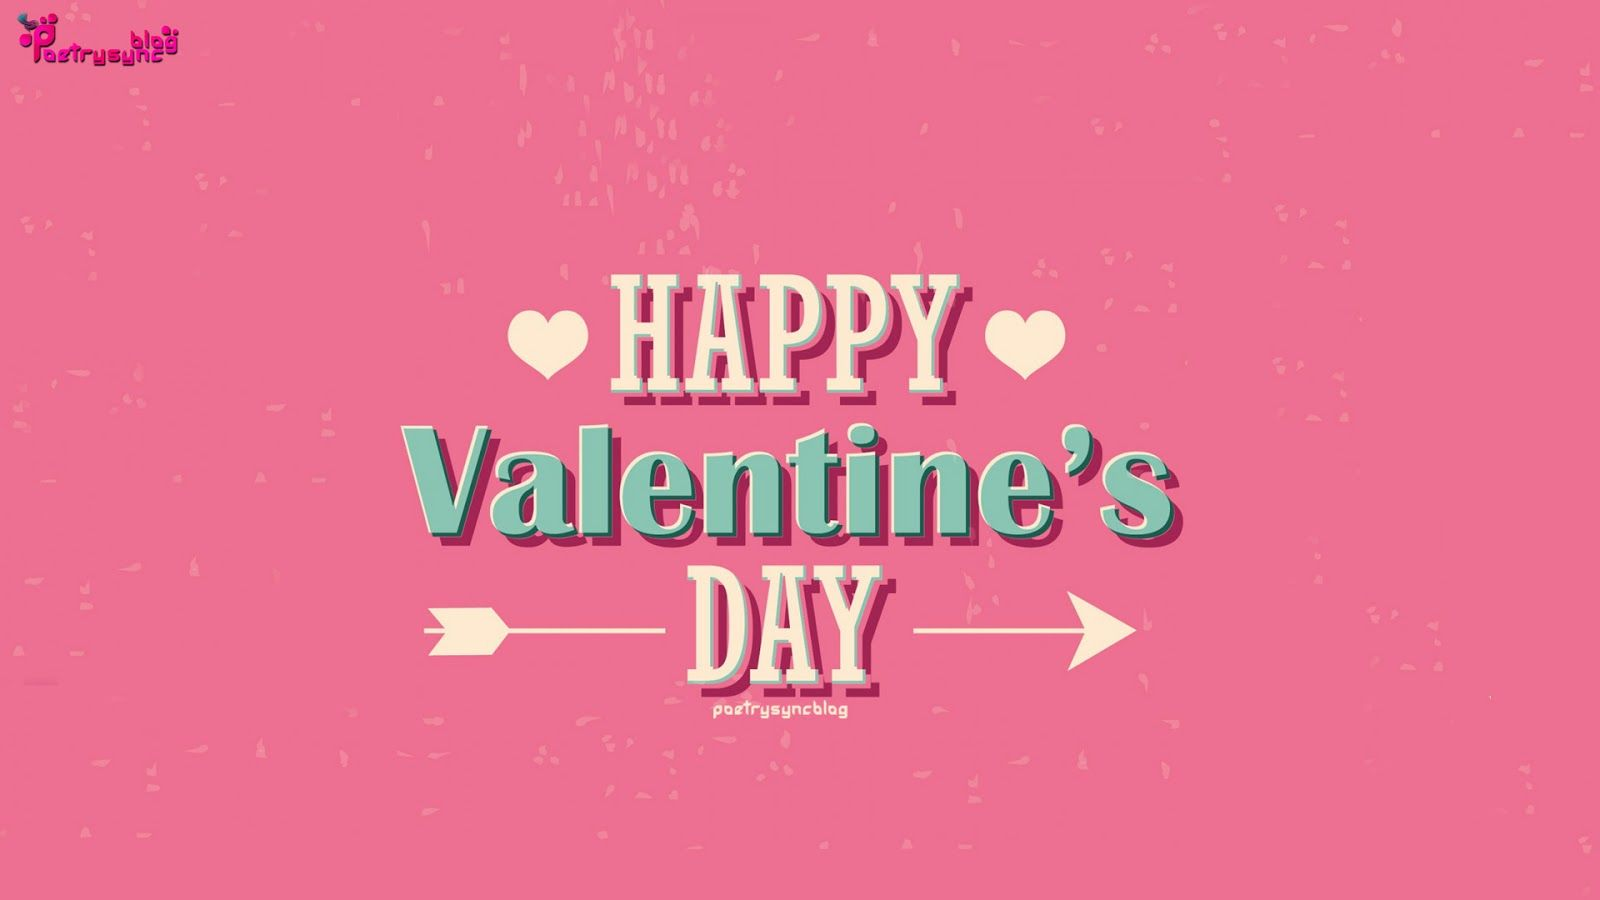 cute happy valentines day wallpaper pictures, photos, and images for